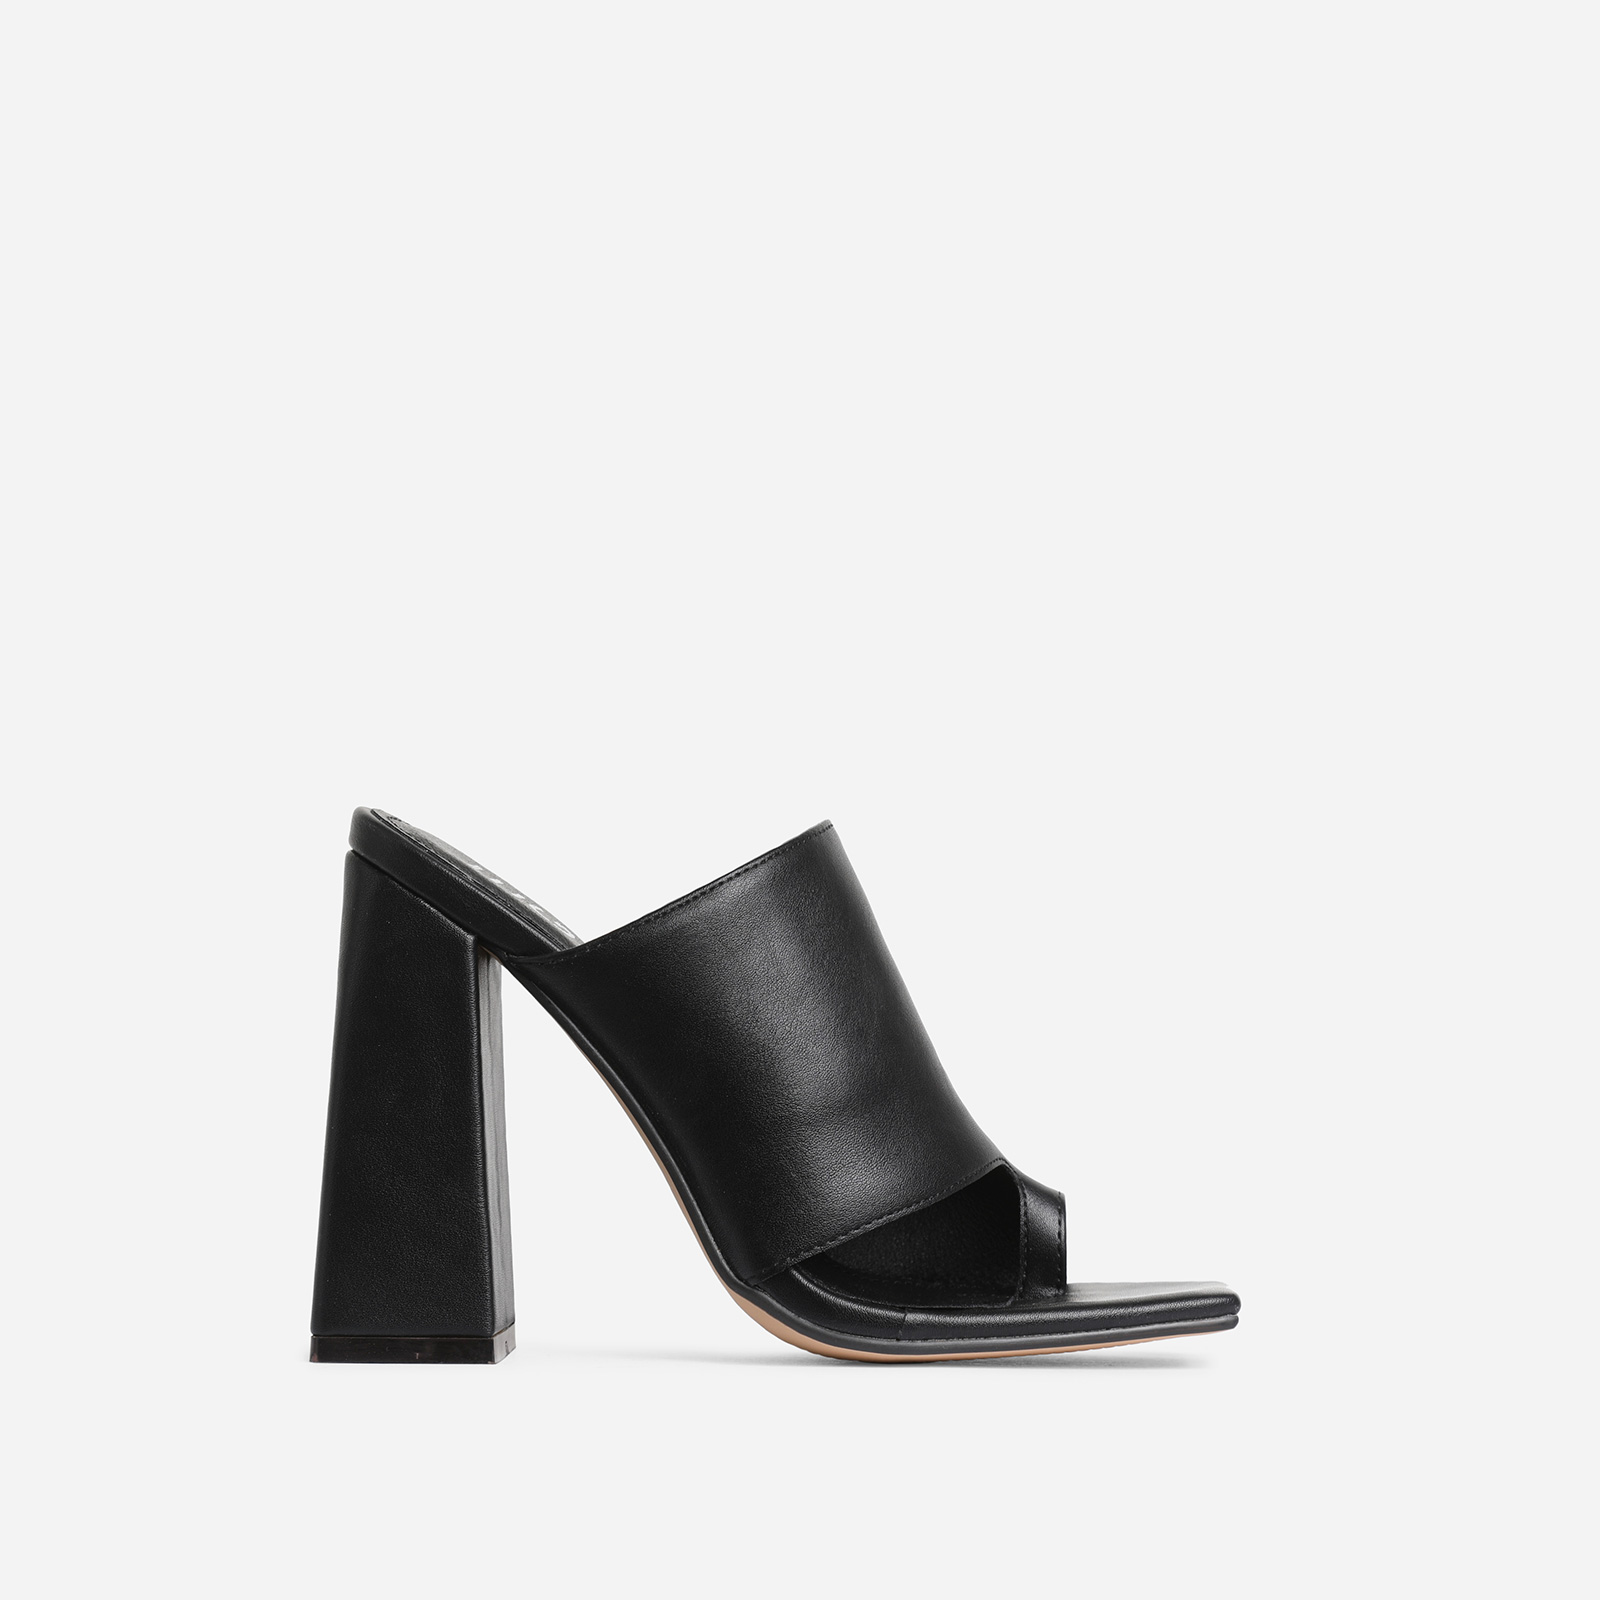 Anfo Square Peep Toe Flared Block Heel Mule In Black Faux Leather